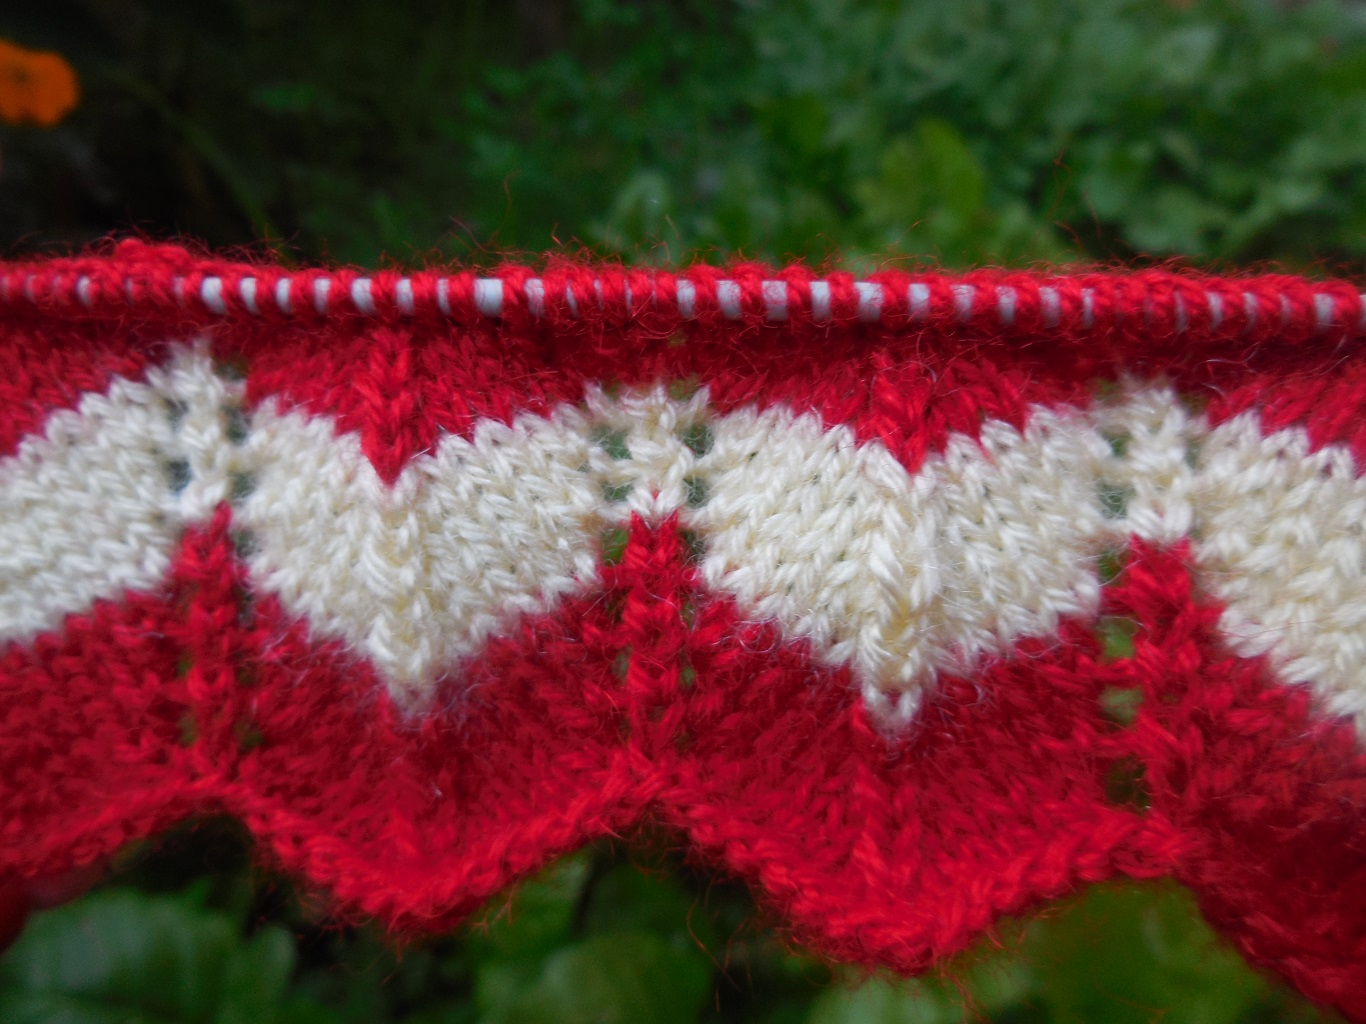 Two Color Knitting Pattern | Knitting Pattern | Kiran The Knitter ...